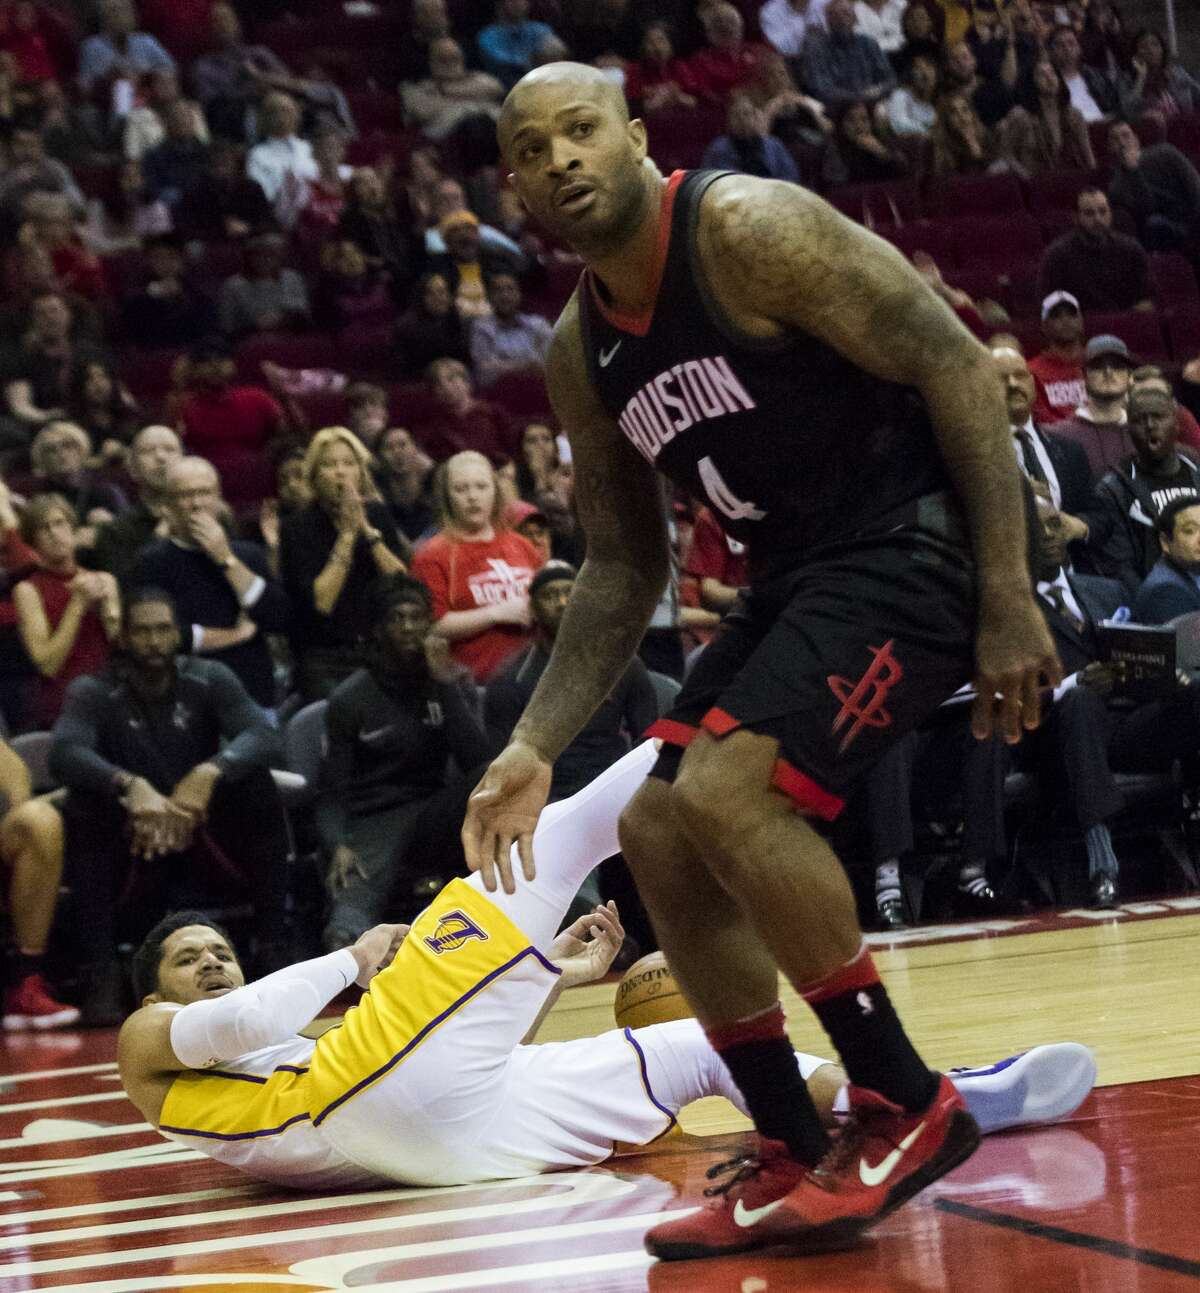 Los Angeles Lakers guard Josh Hart (5) is fouled by Houston Rockets forward PJ Tucker (4) during the sixth period, Sunday, Dec. 31, 2017, in Houston. The Rockets won 148-142. ( Marie D. De Jesus / Houston Chronicle )